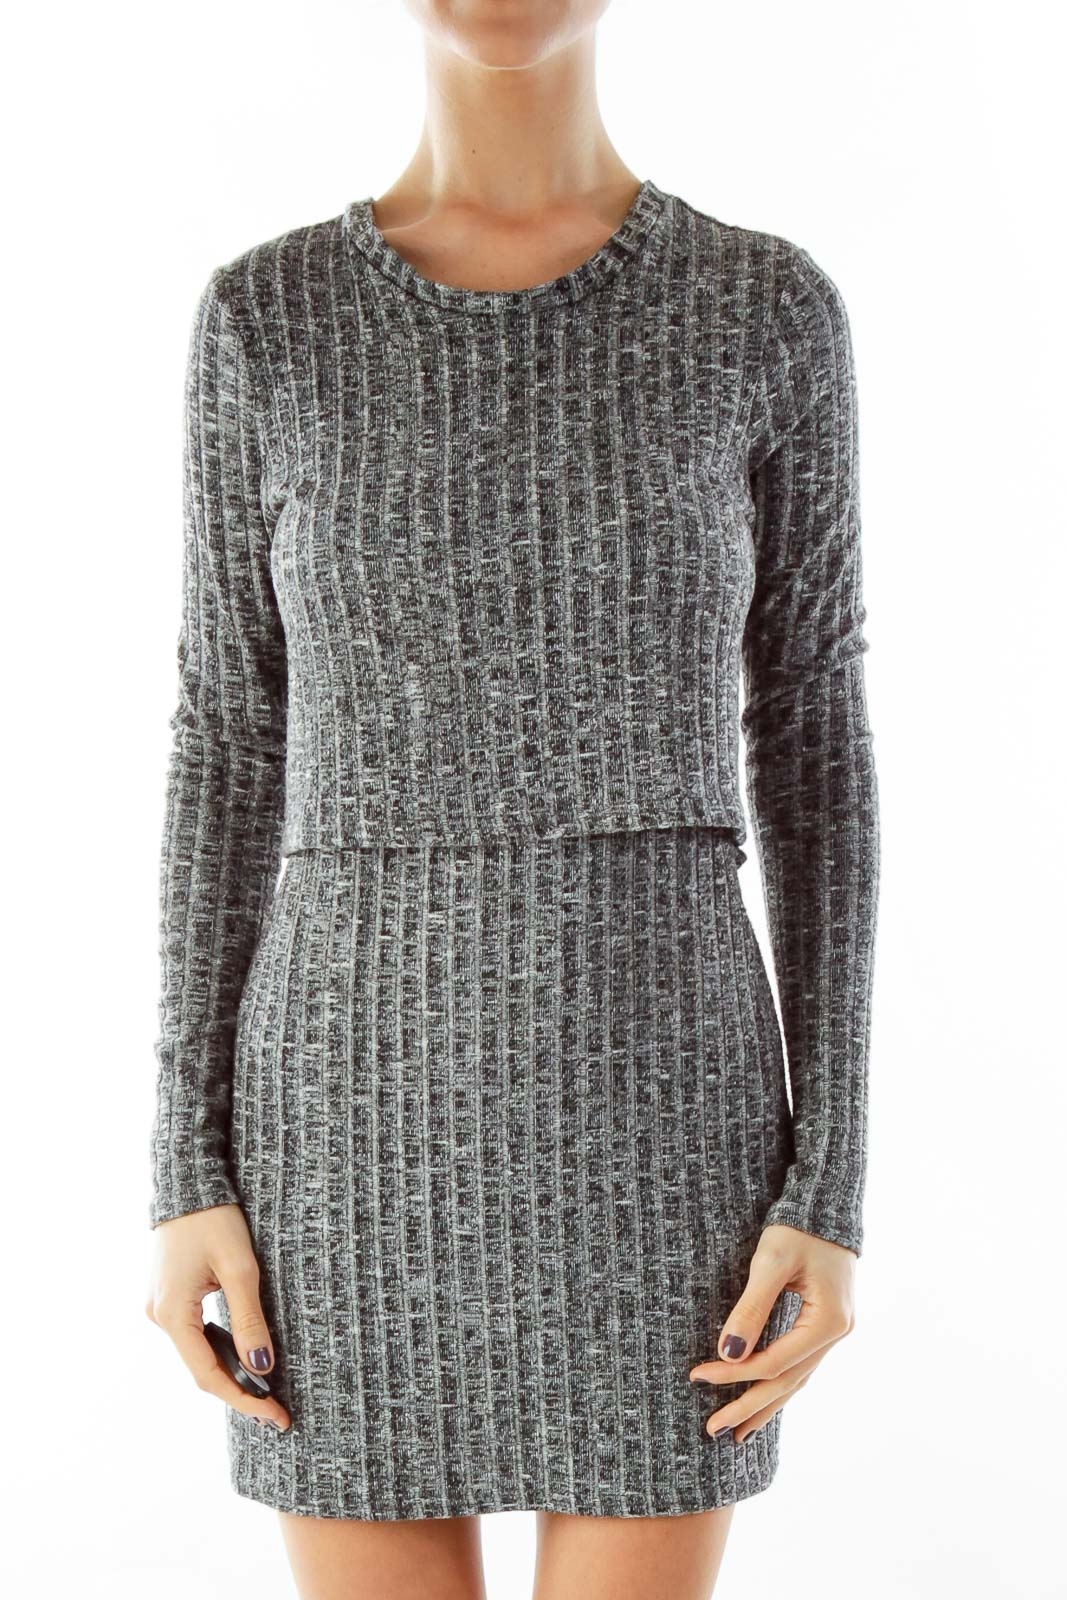 Gray Marled Knit Dress Front